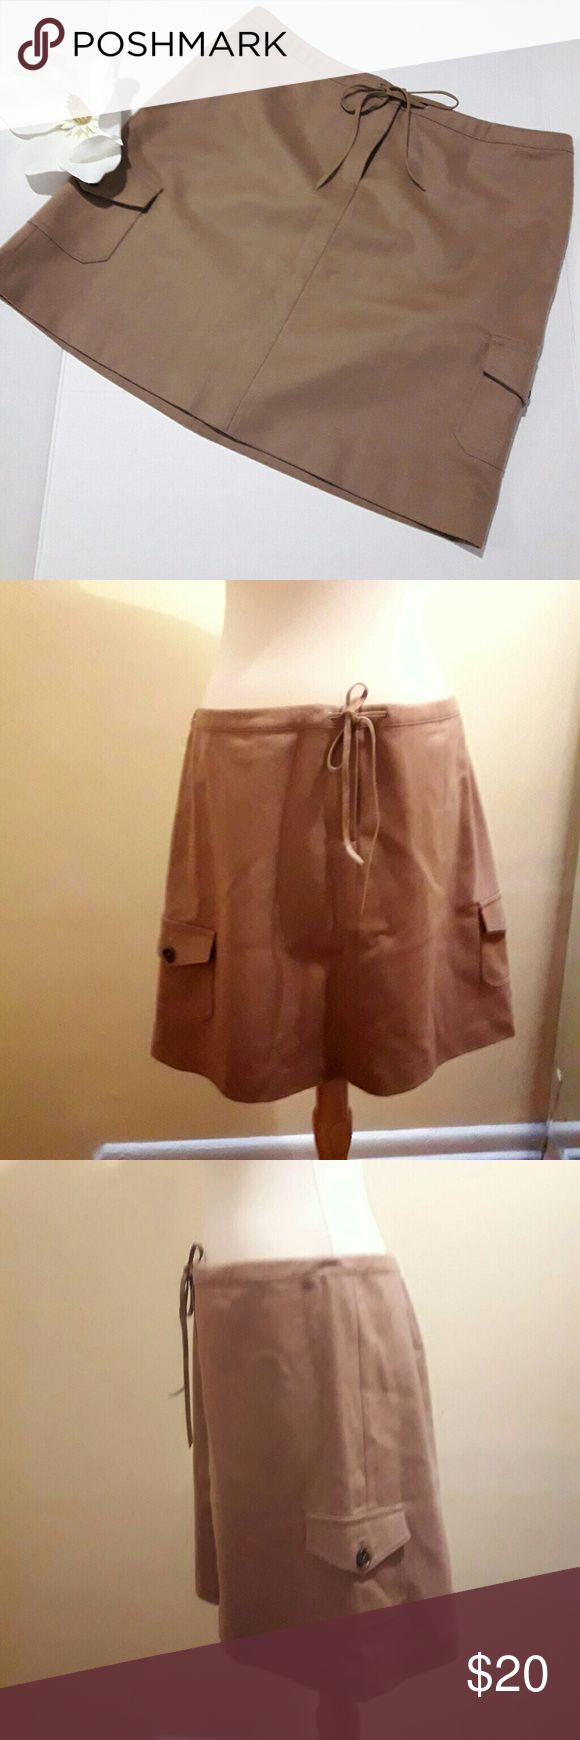 "J.crew Factory Store Tan skirt size 10 ♡Length: ~17""  ♡Waist:~16.5""  ♡Dry clean only  ♡Pre-owned; great condition, no stain, tear, or rips.  ♡Due to studio lighting, product be may lighter or darker in pictures. ♡ Bundle 2 or more items in my closet to save 10% and pay only ONE shipping fee!!! #11 J. Crew Factory Skirts Mini"